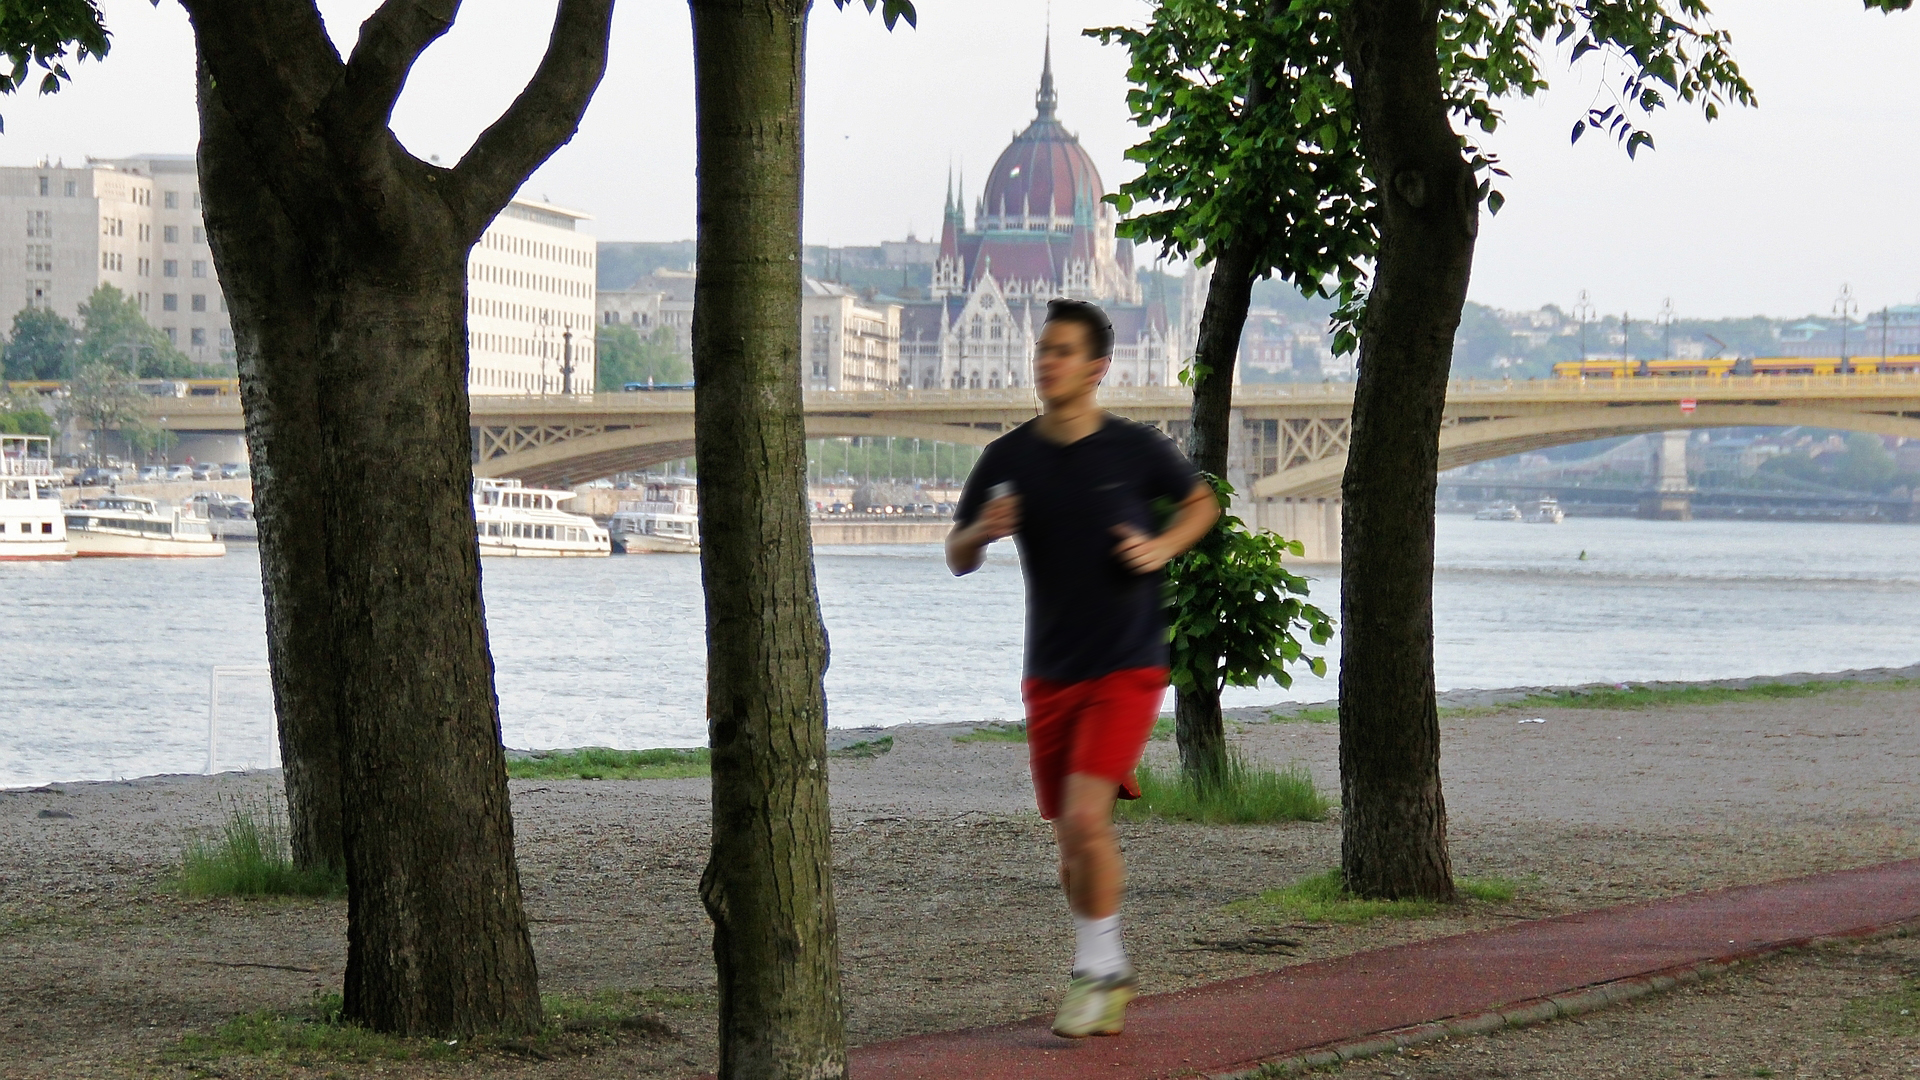 Jogging in Budapest